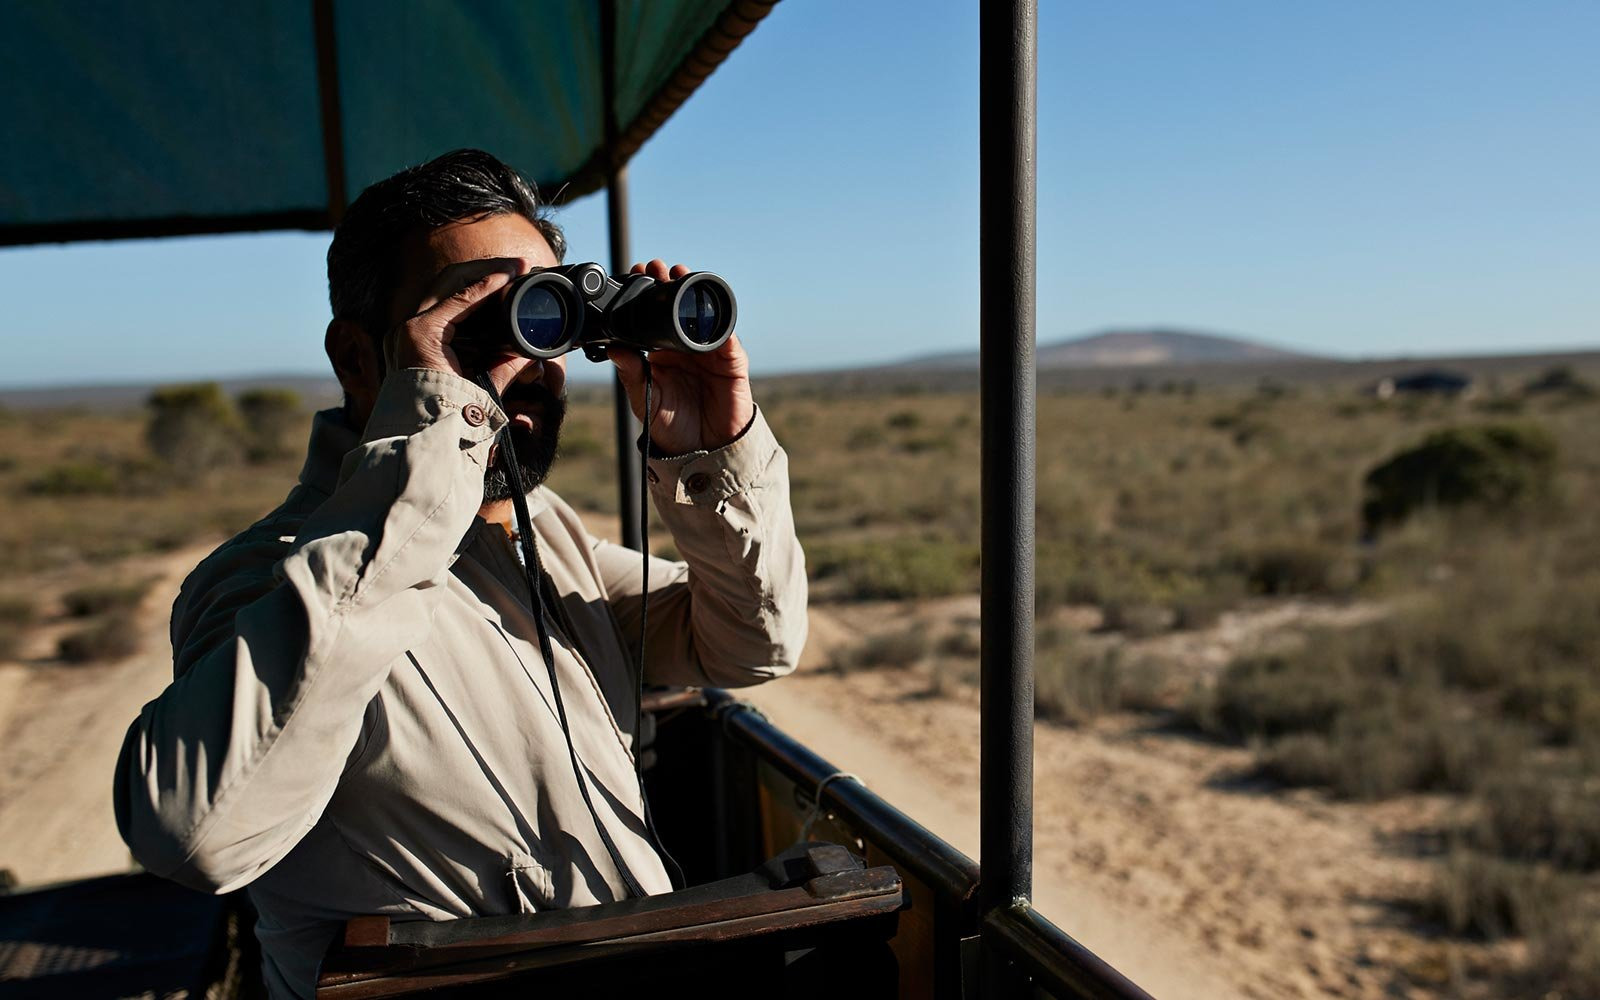 Best Binoculars For Safari 2020 The Best Binoculars for Safari in 2019 | Travel + Leisure